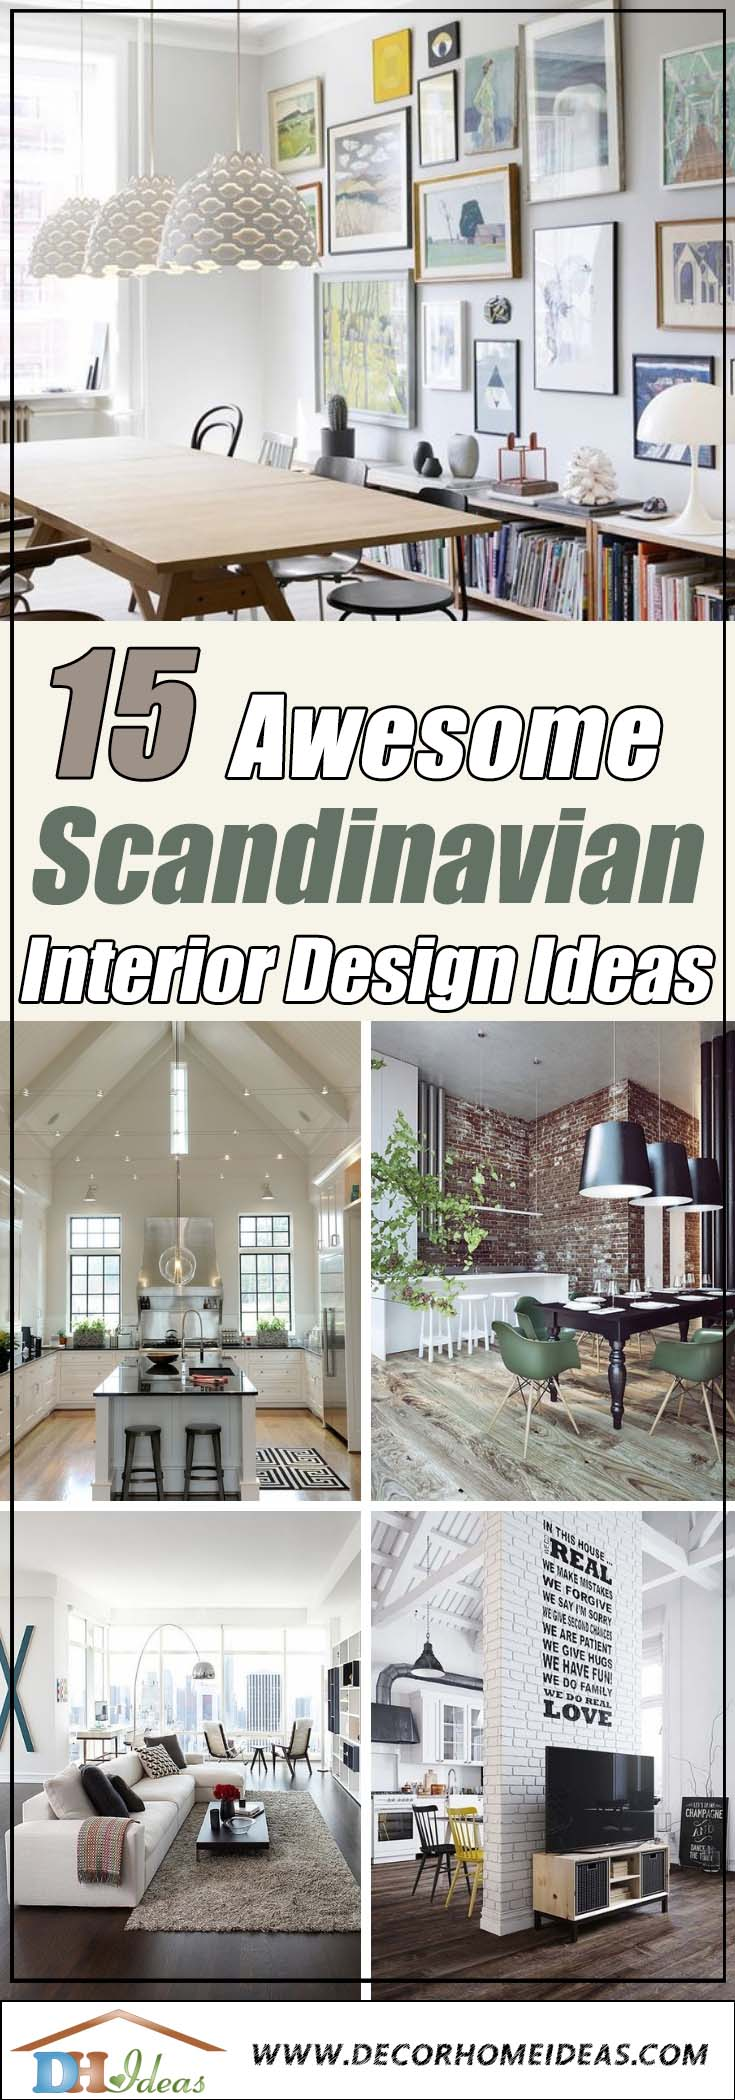 15 Functional and Cozy Scandinavian Interior Design Ideas | Interior design and ideas from Scandinavia, simple and beautiful. #homedecor #design #interiordesign #scandinavian #decoratingideas #decorhomeideas